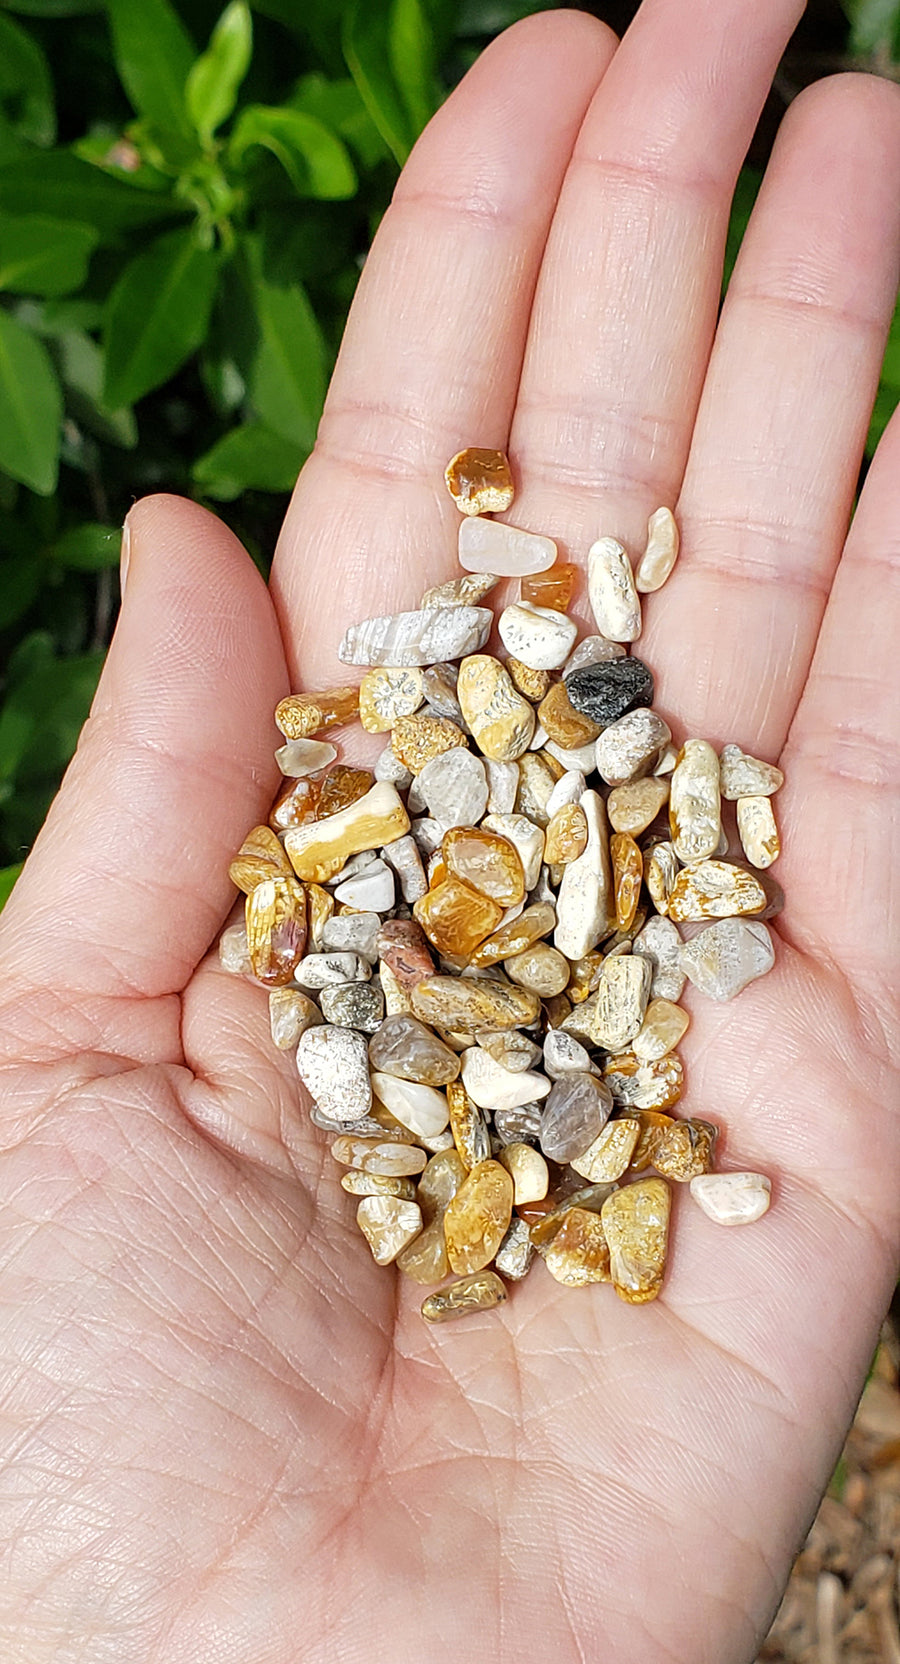 Fossil Coral Gemstone Chips - 1 Ounce Bag